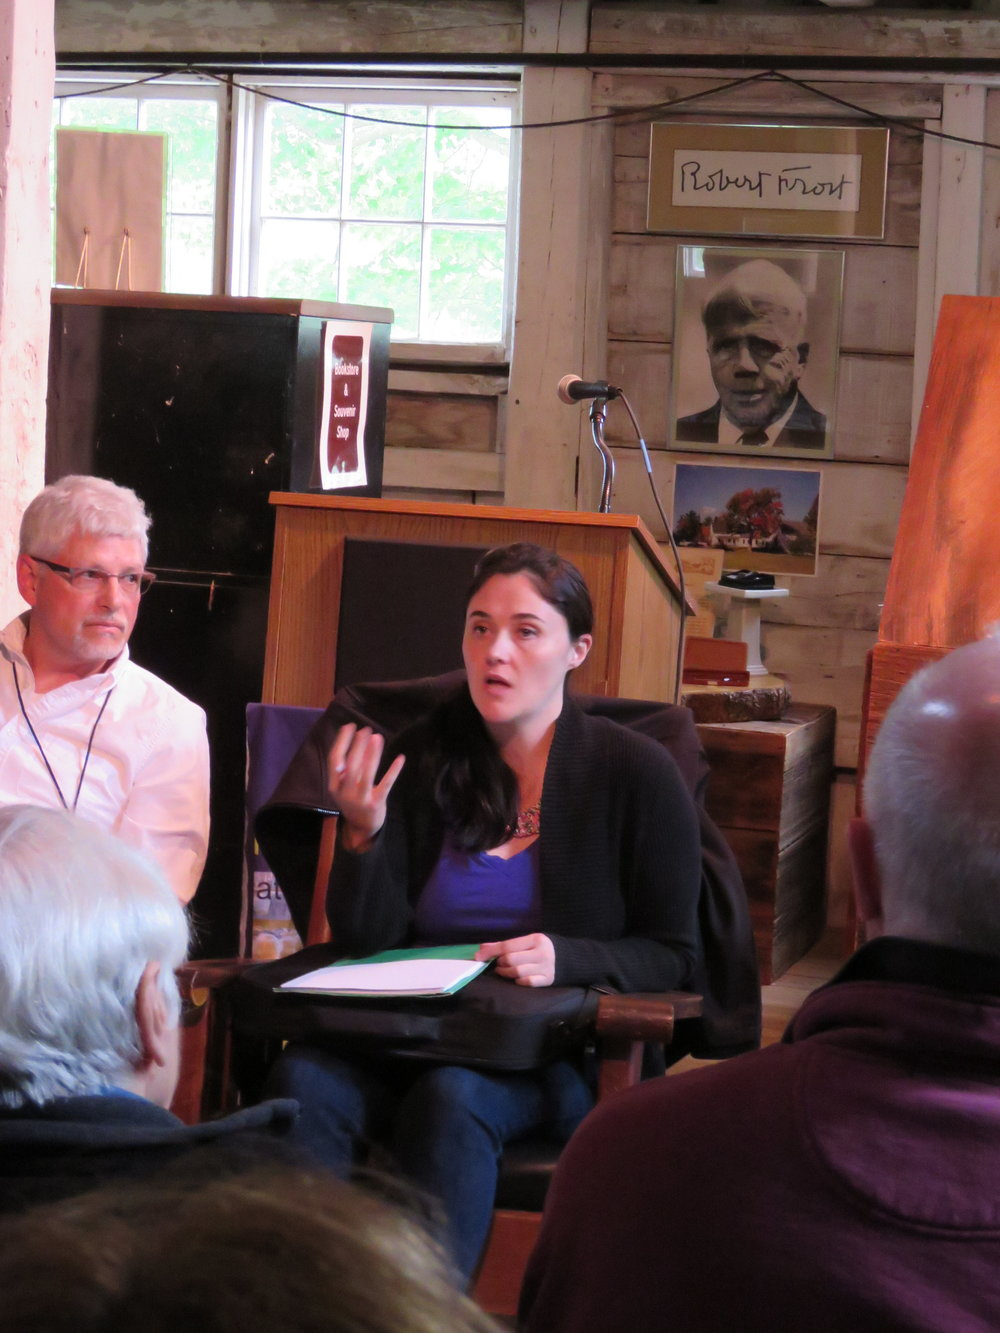 Caitlin Doyle Shares Some Publishing Tips While Frost Looks On